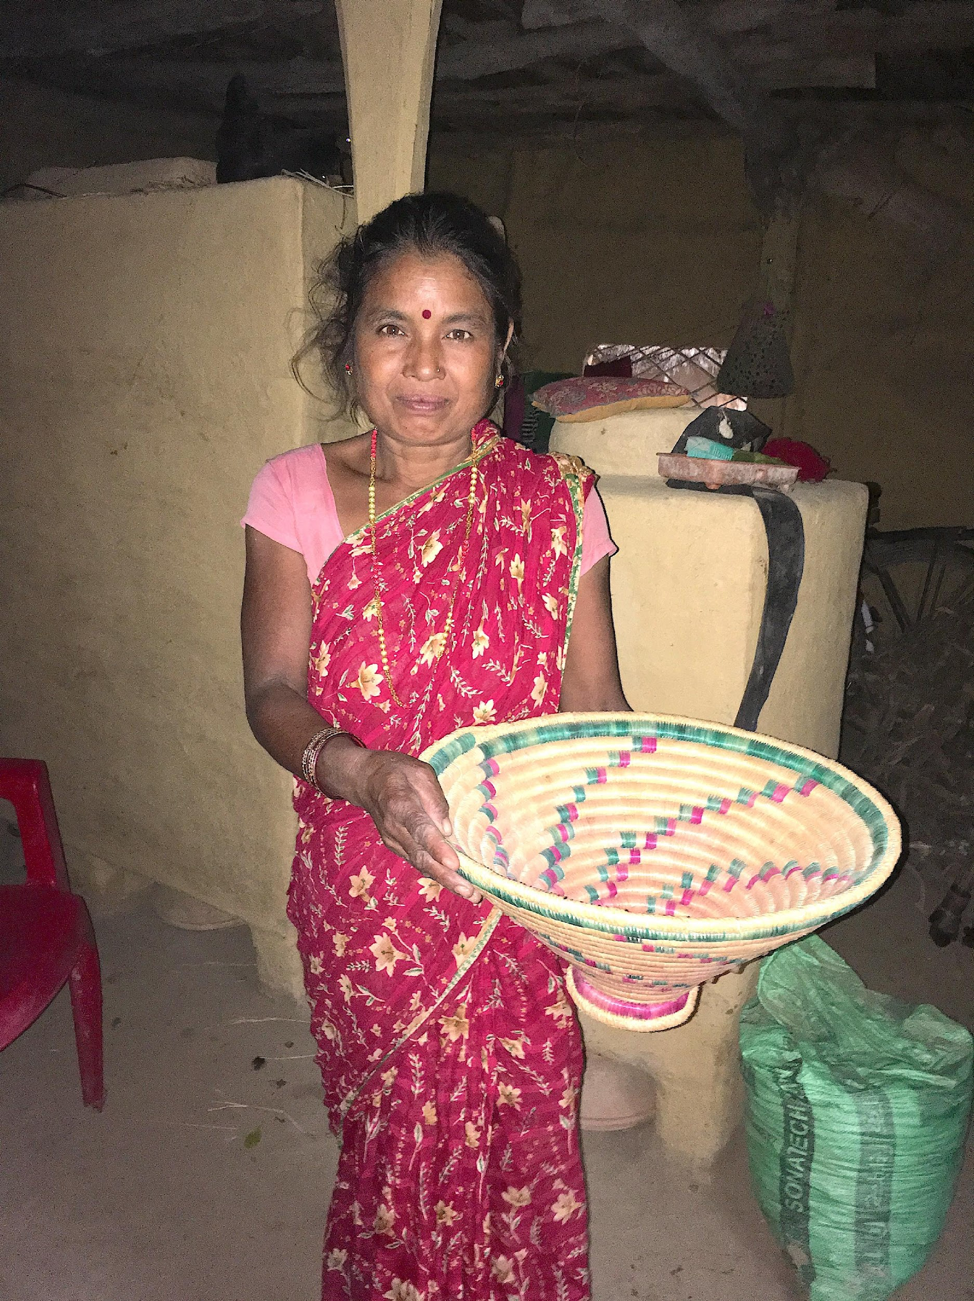 Dhankumari with her hand woven basket